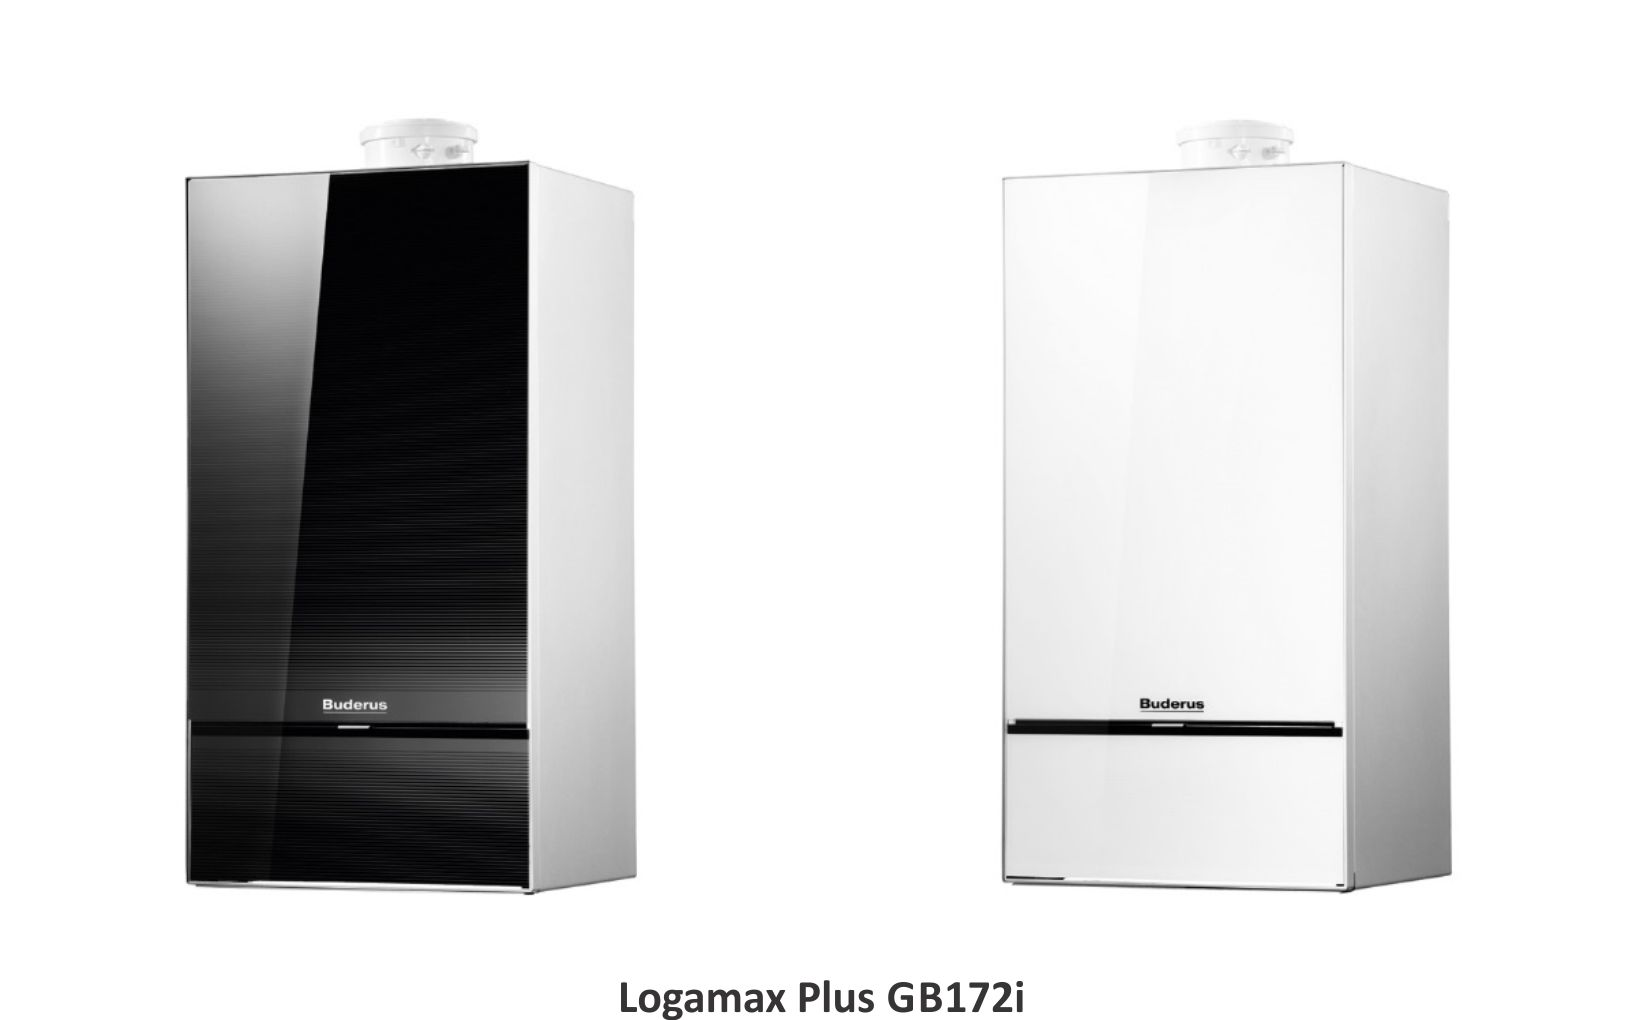 Logamax Plus GB172i